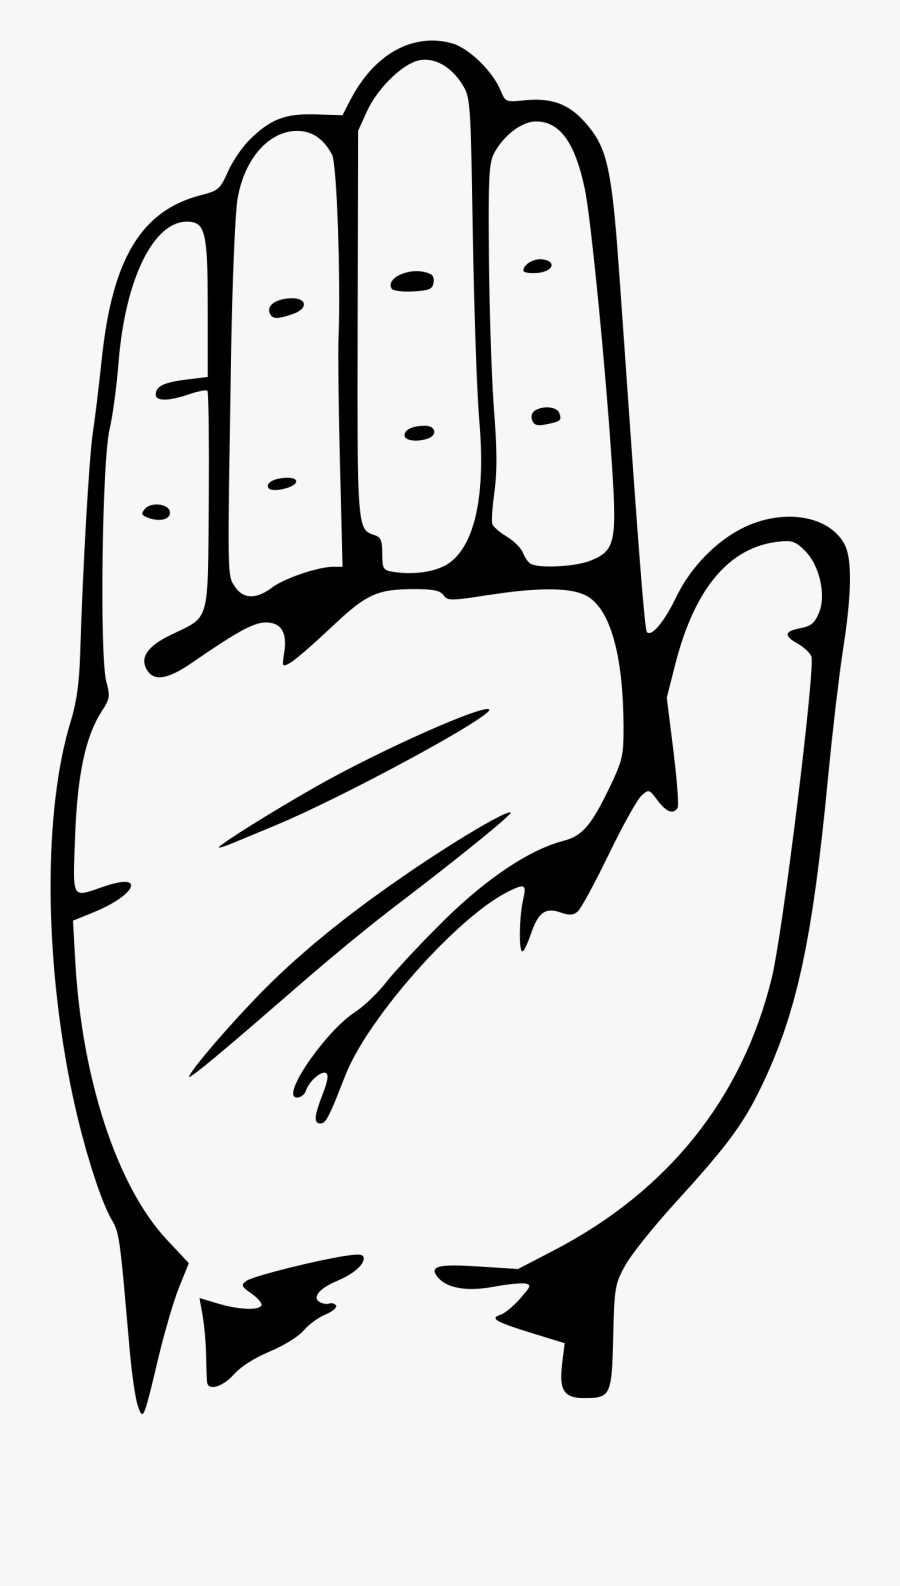 Closed Hand Clipart Free Clipart Image Image - Logo Indian National Congress, Transparent Clipart